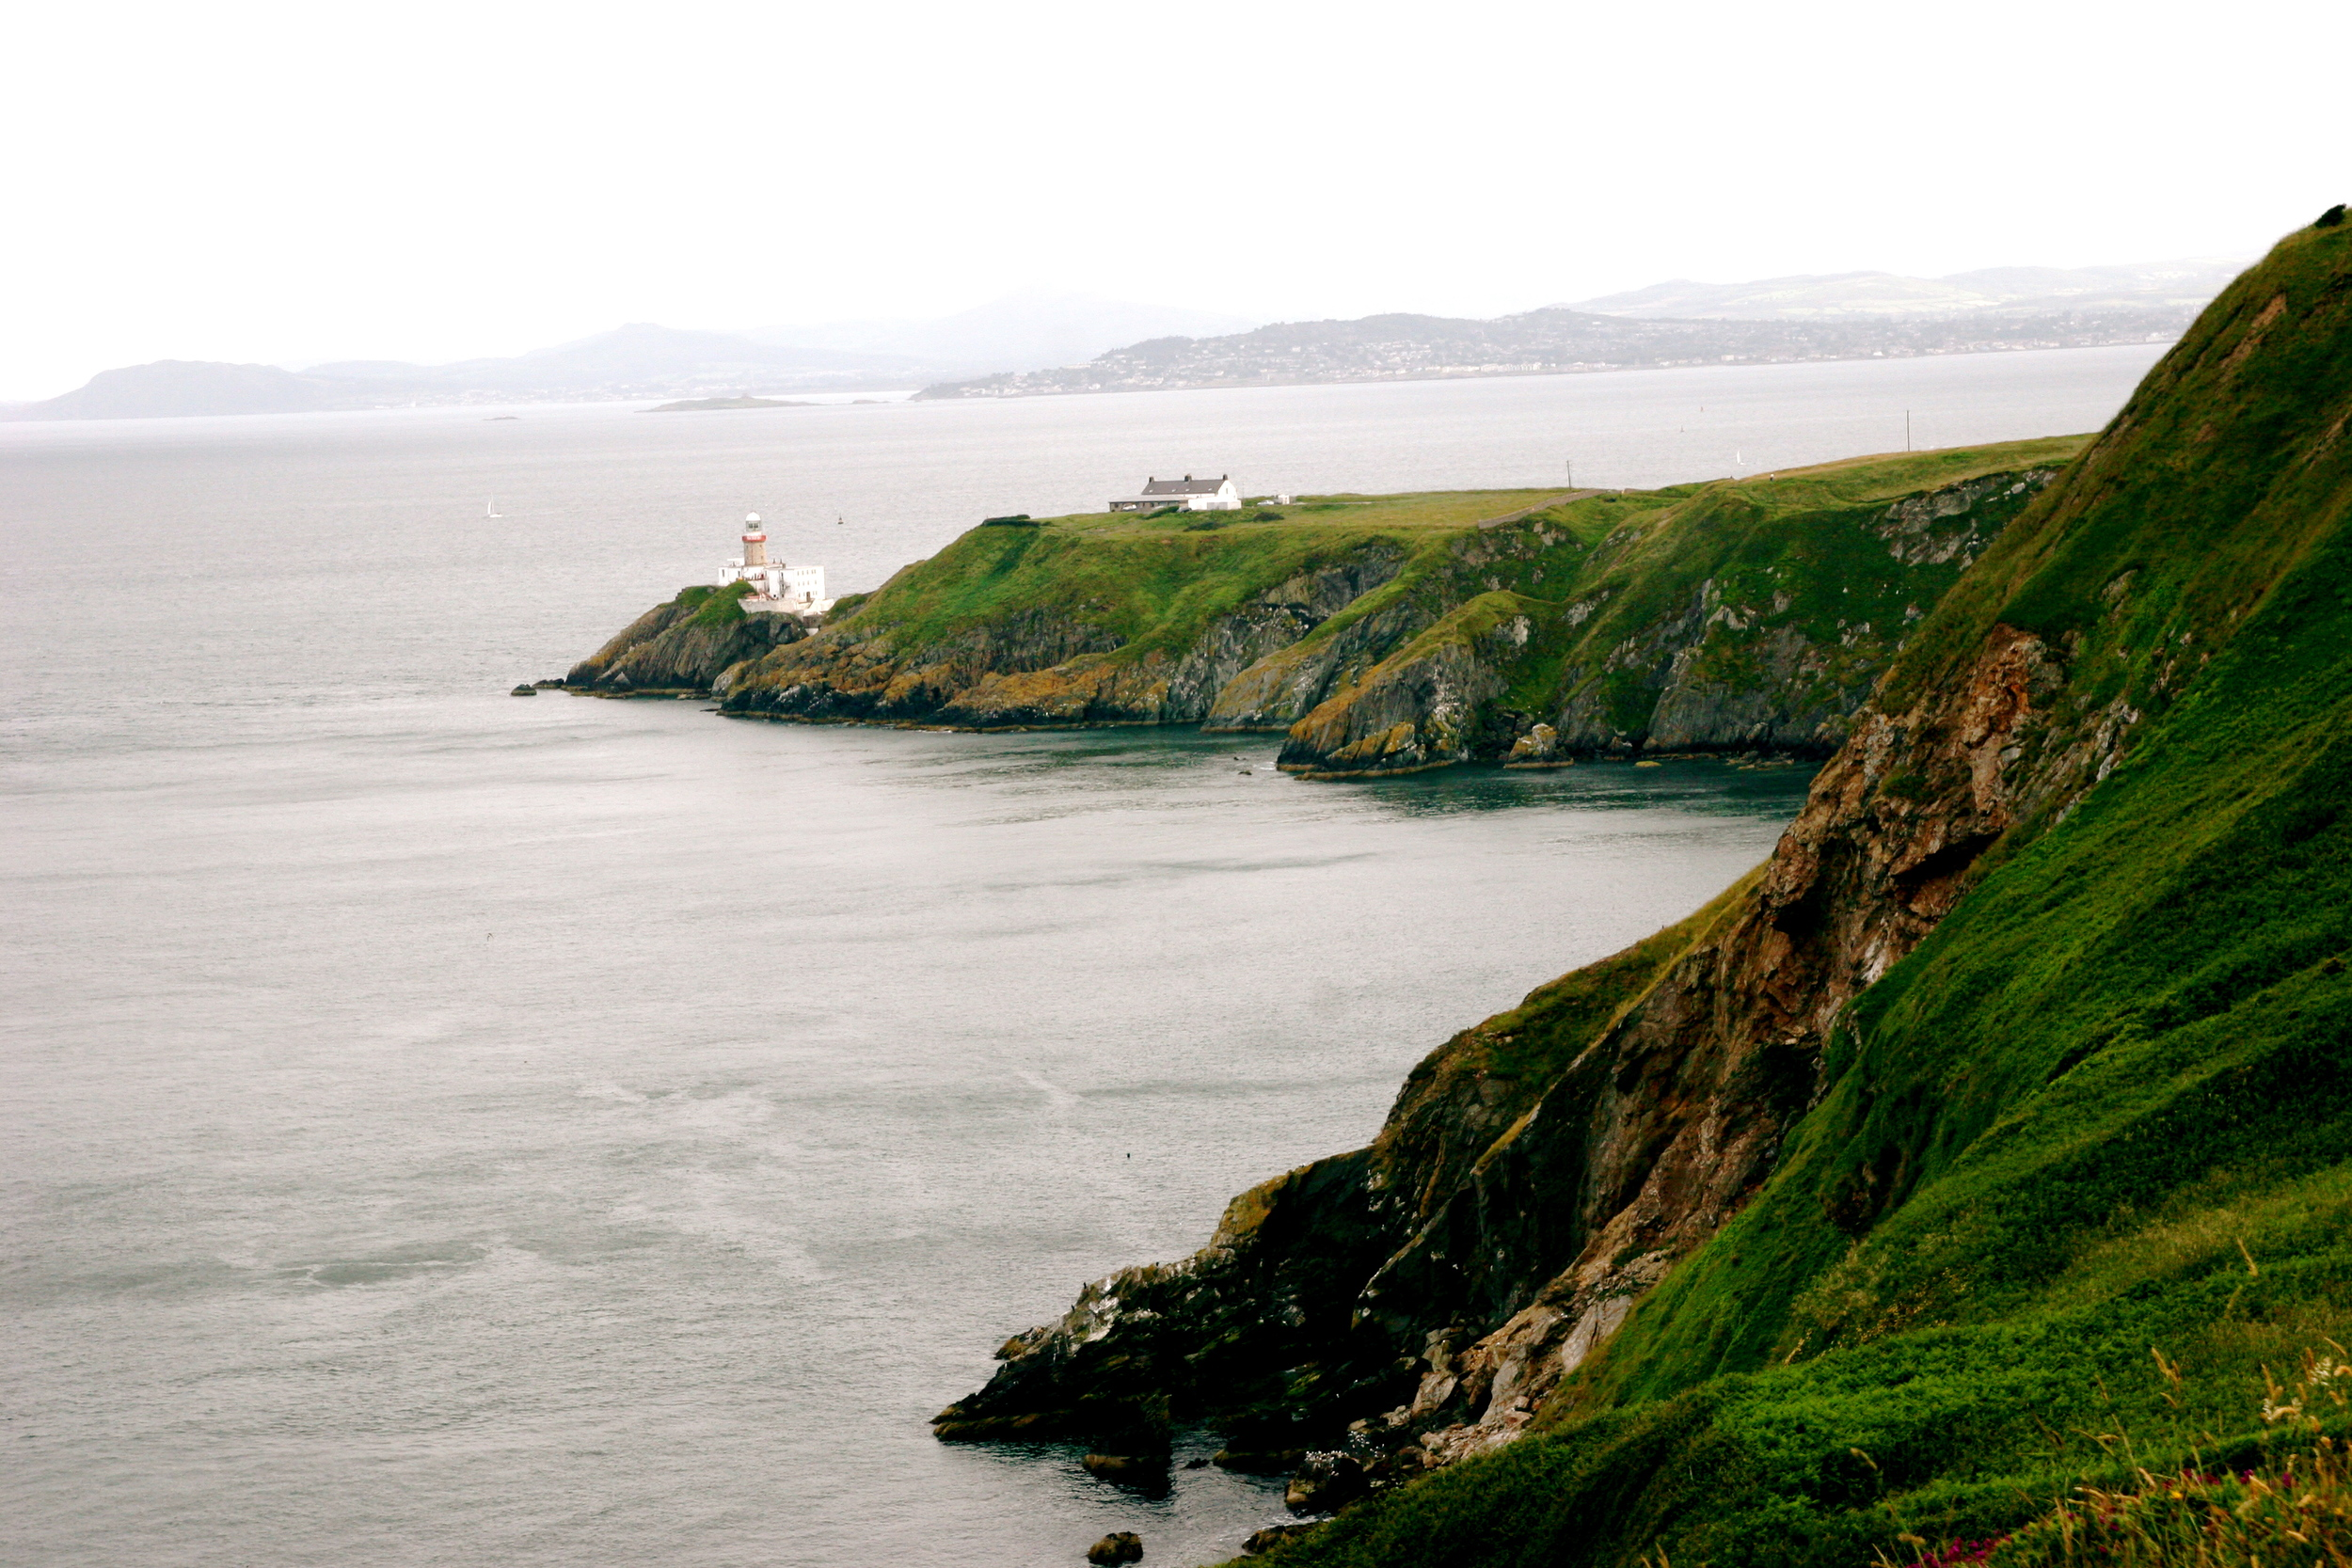 From the Cliffs of Howth, Ireland